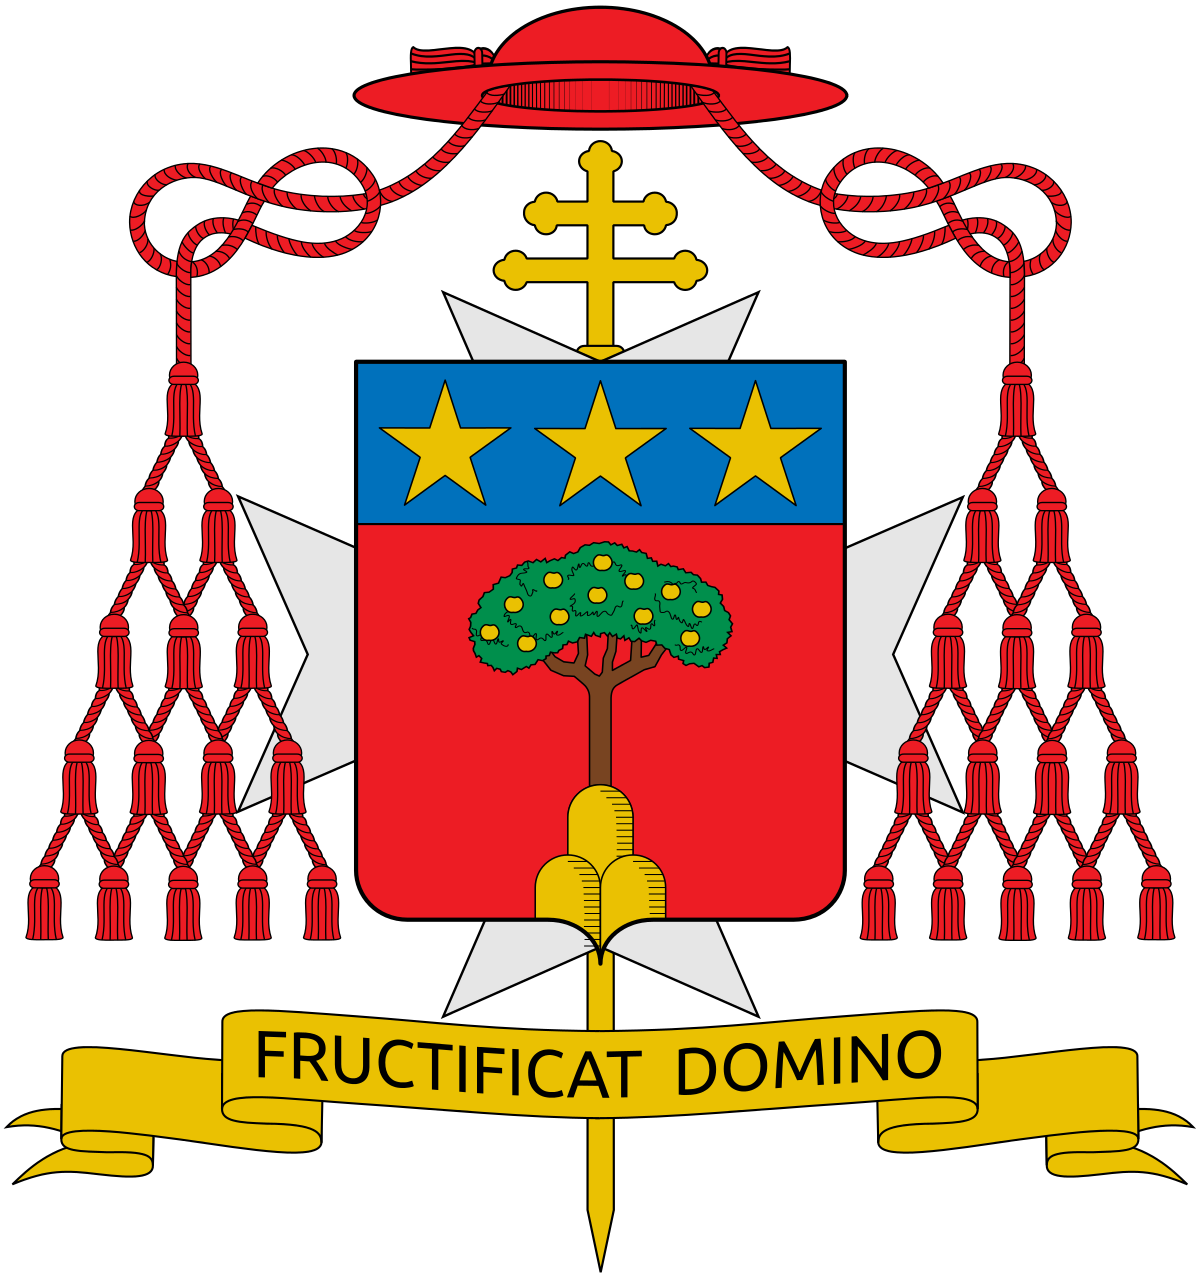 Conference clipart oath ceremony. Pericle felici wikipedia